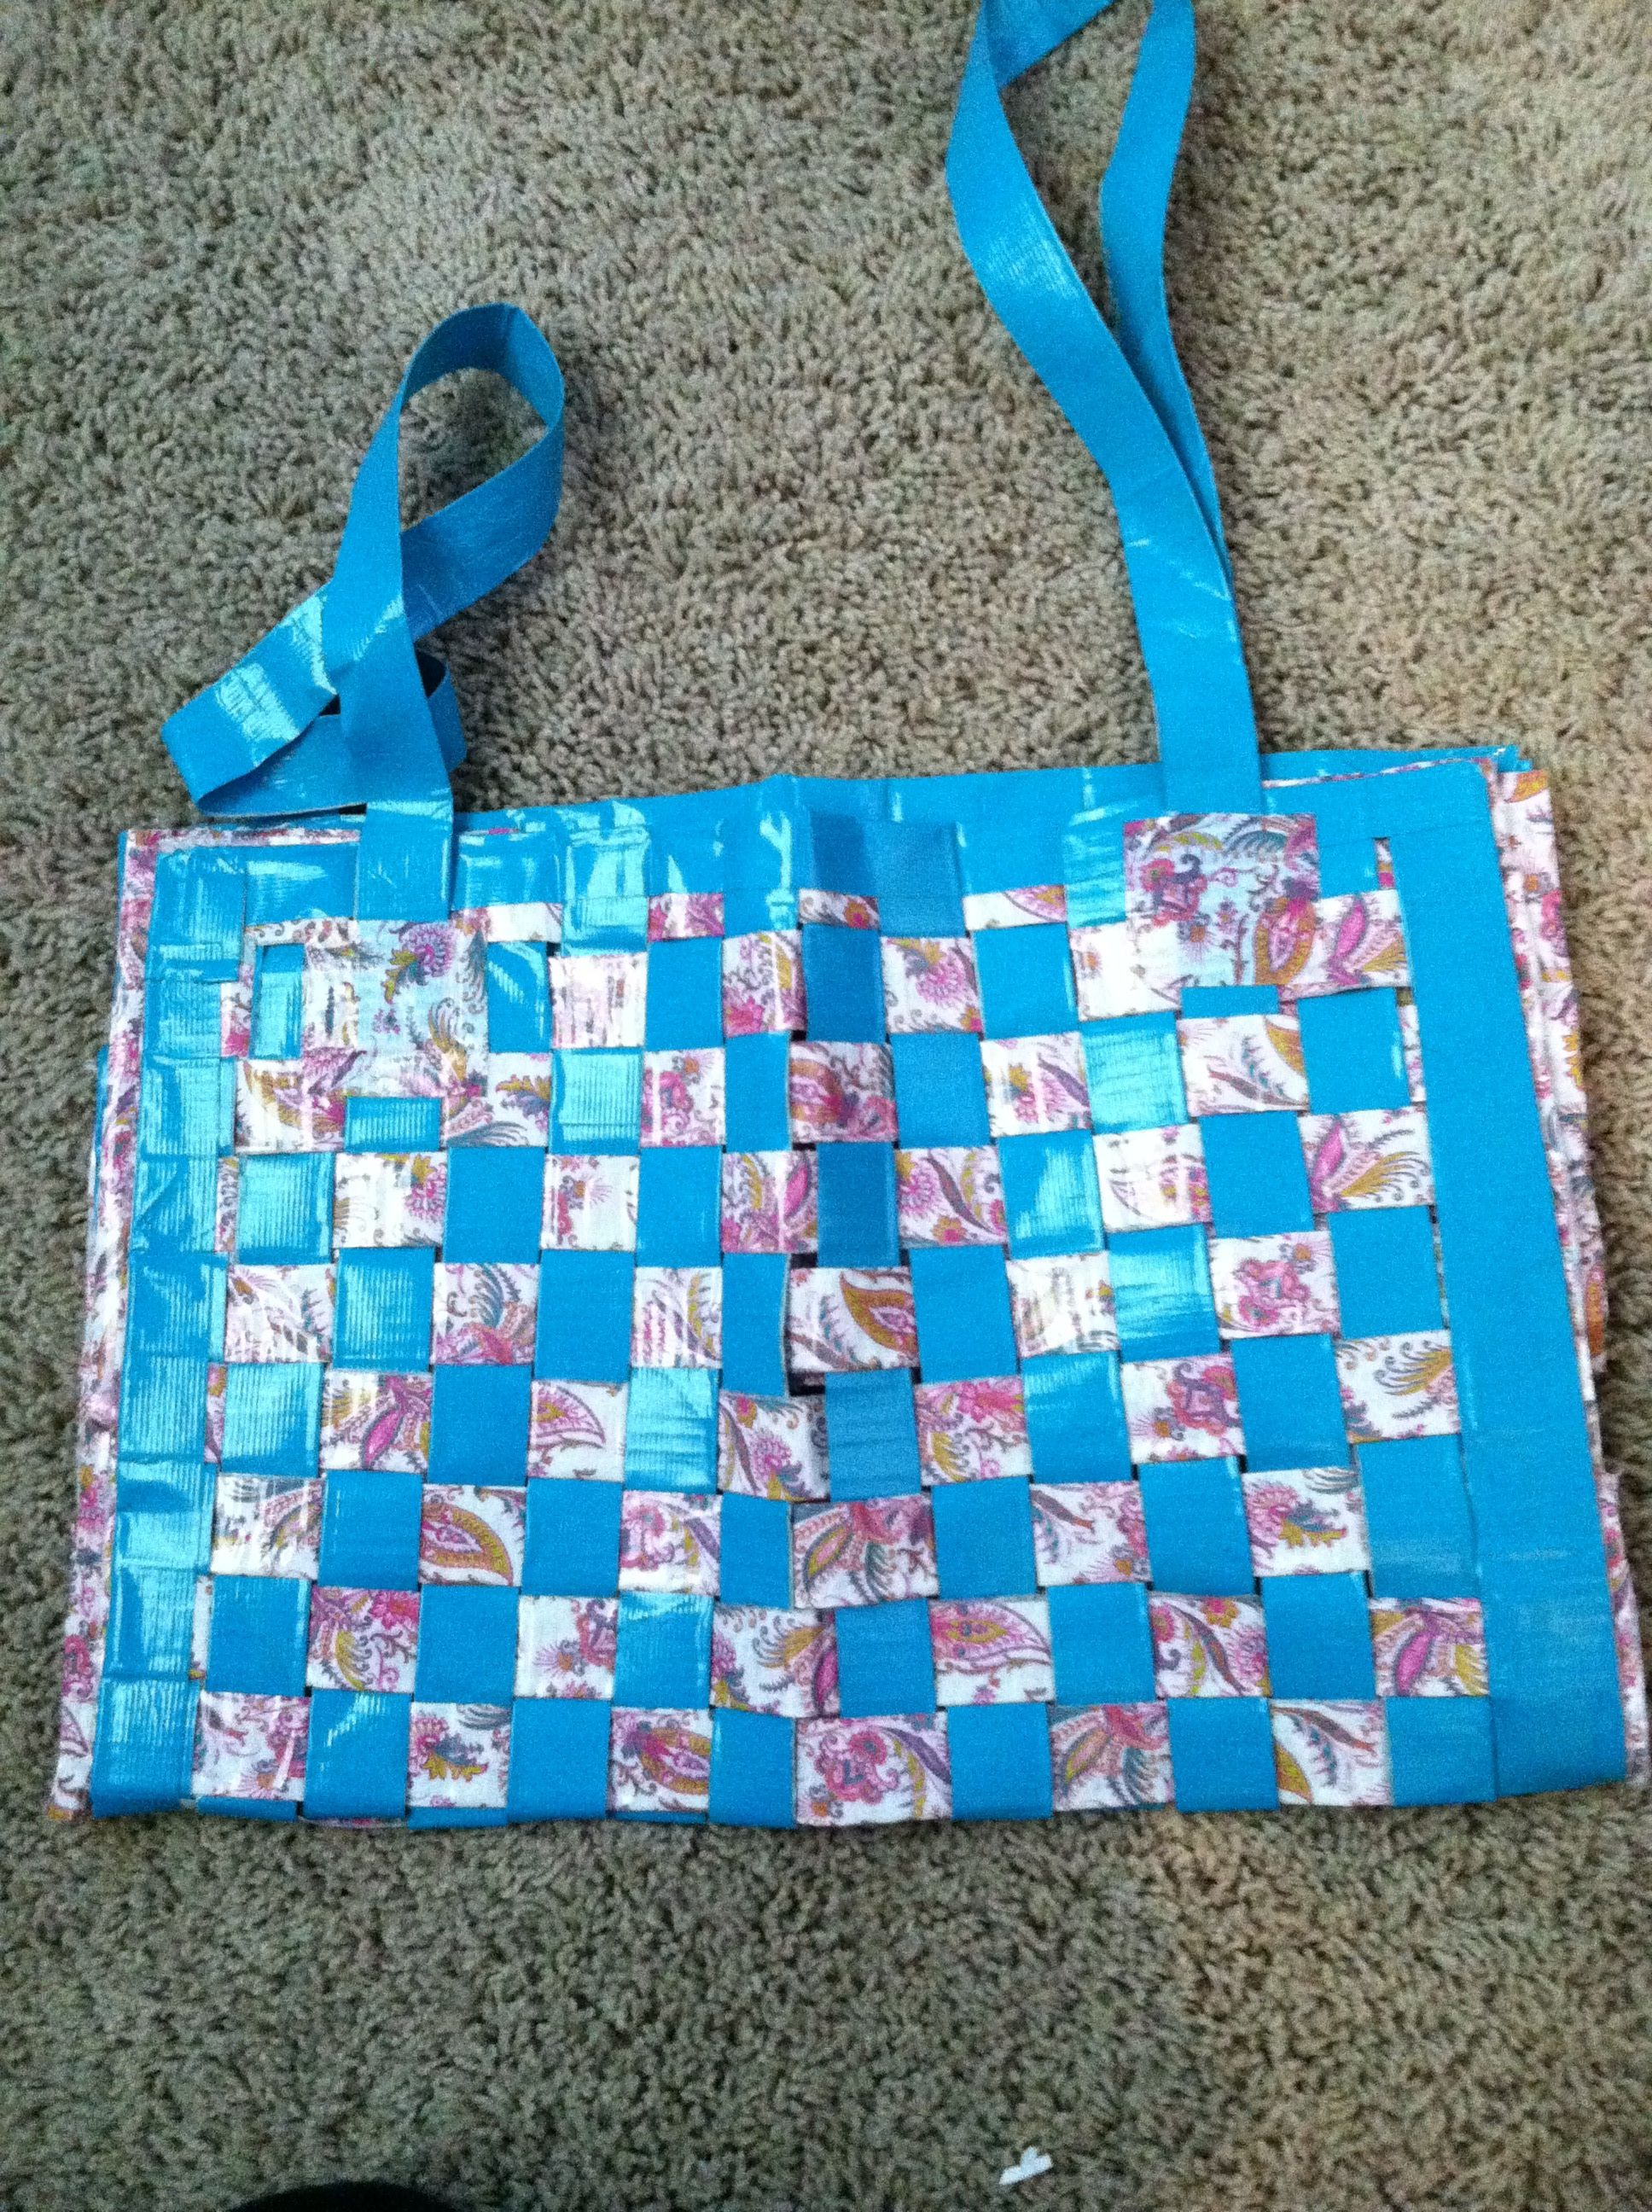 Woven duct tape beach bag!